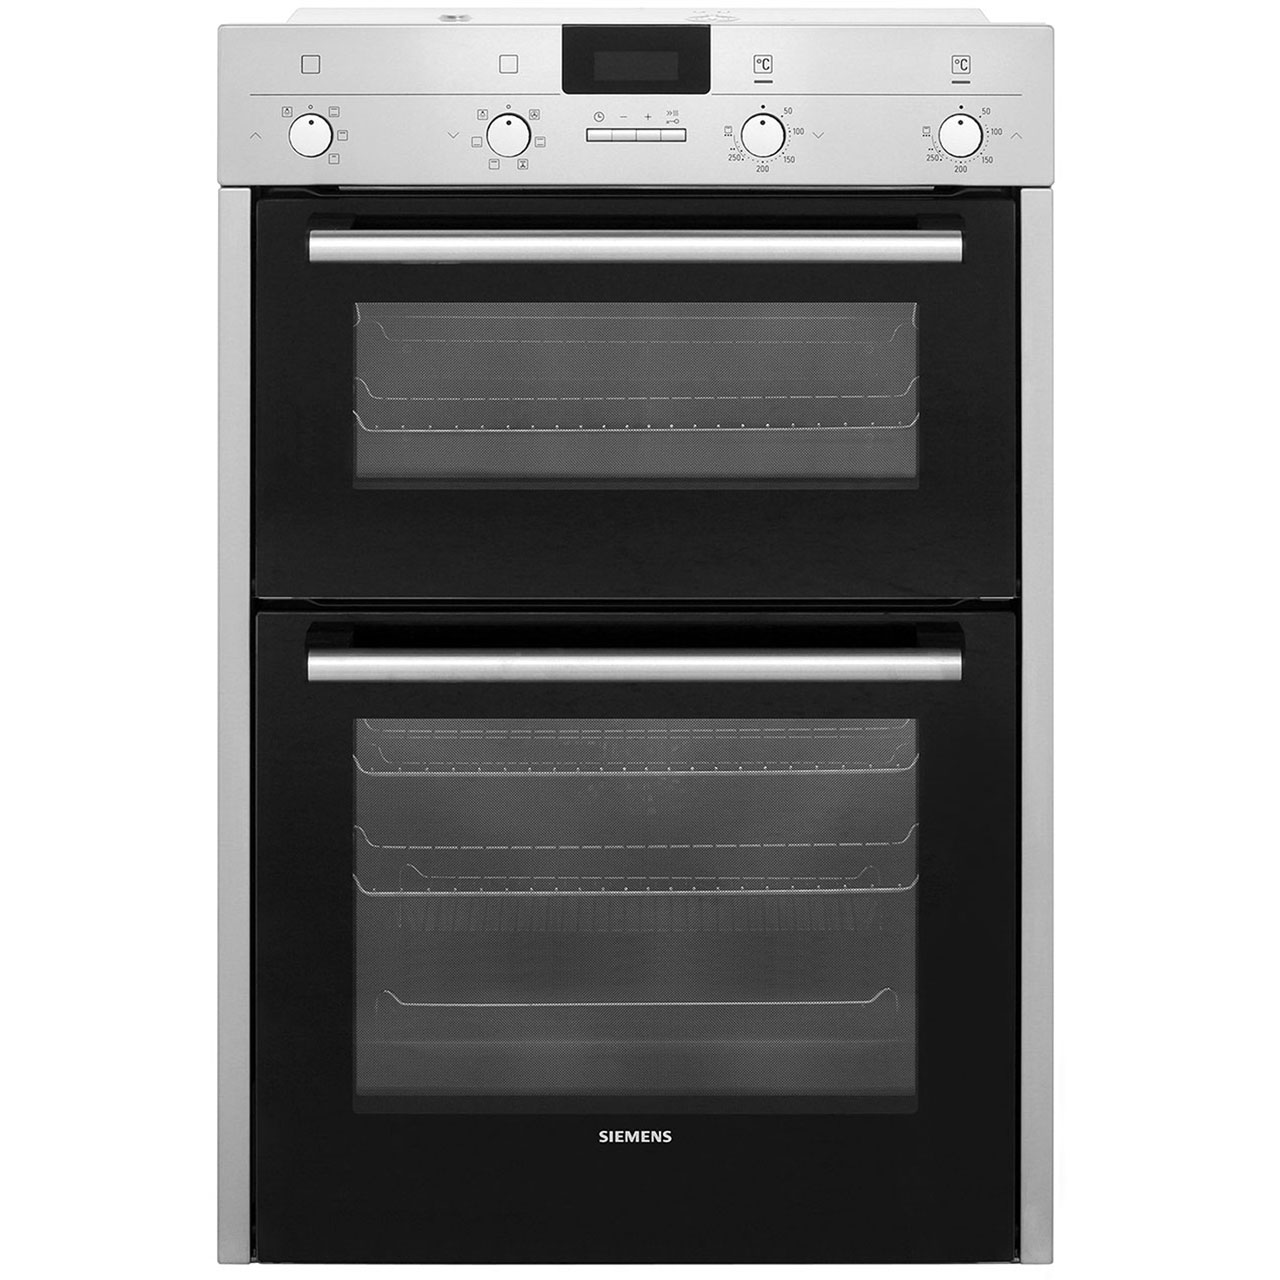 buy cheap siemens oven compare cookers ovens prices for best uk deals. Black Bedroom Furniture Sets. Home Design Ideas